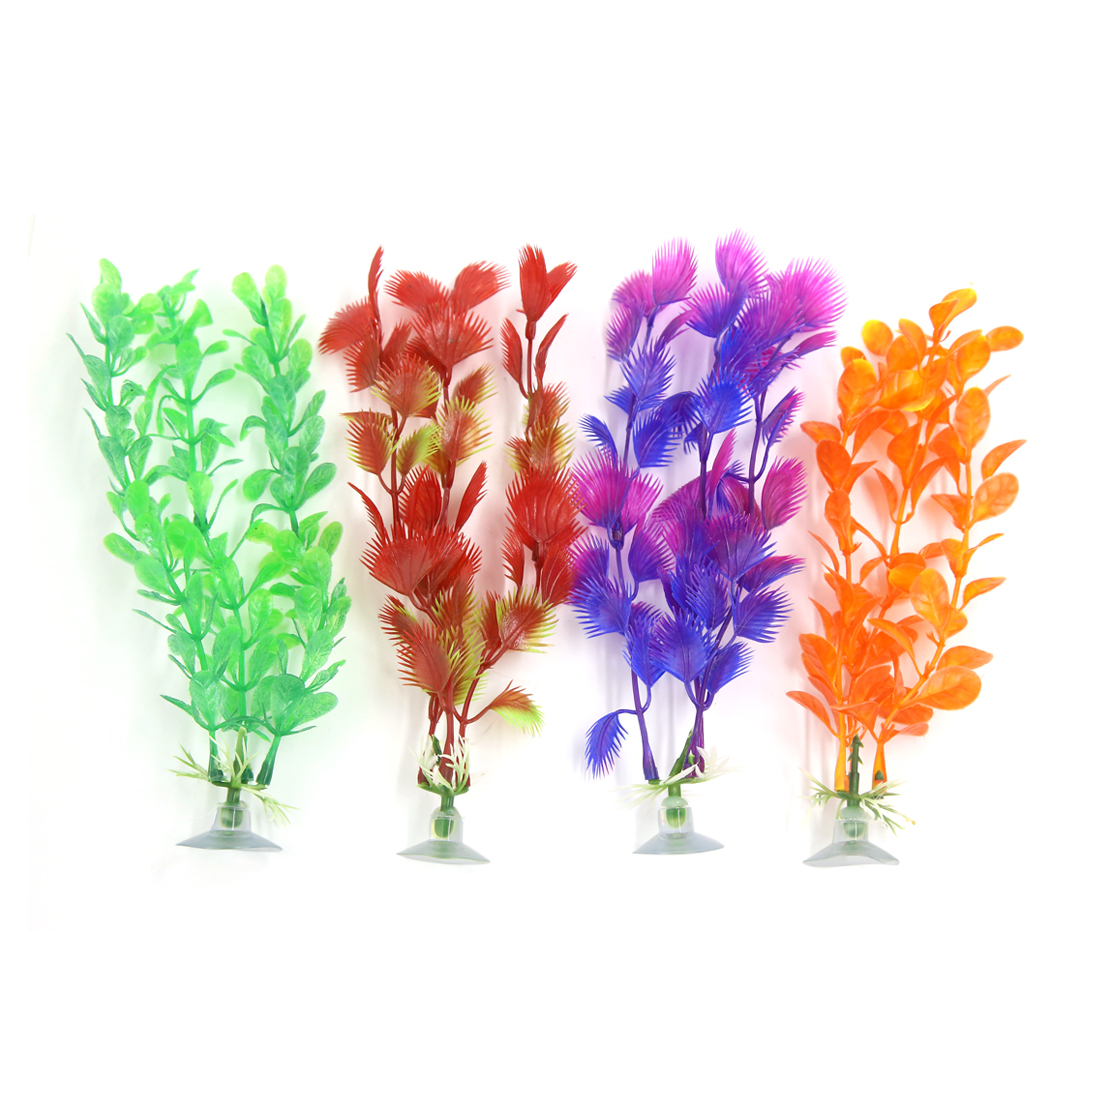 4 Pcs Aqua Ornament Plastic Decoration Plant With Suction Cup